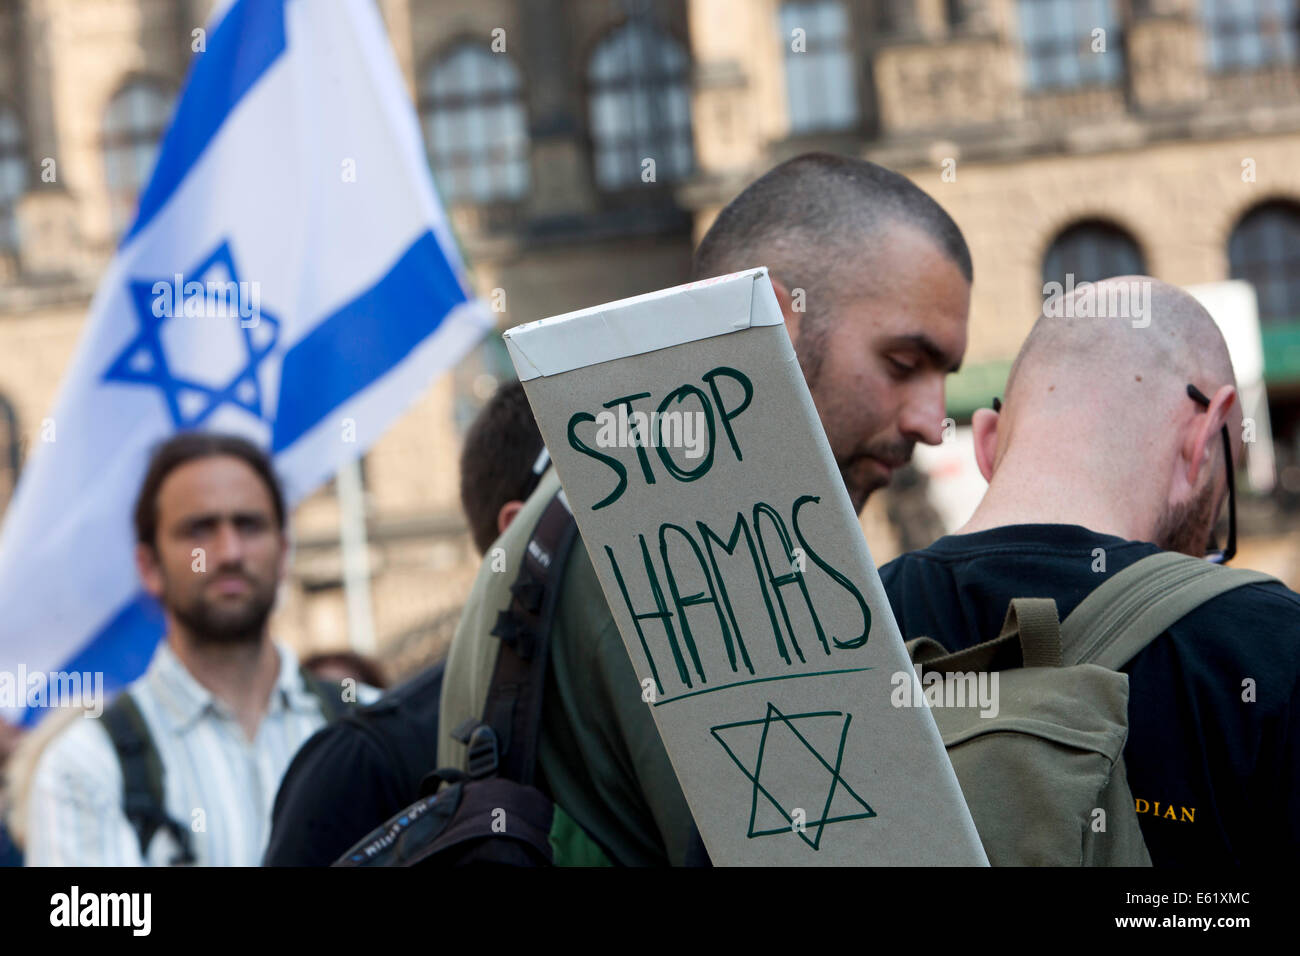 Stop Hamas, Demonstration in support of Israel, Prague Czech Republic Stock Photo